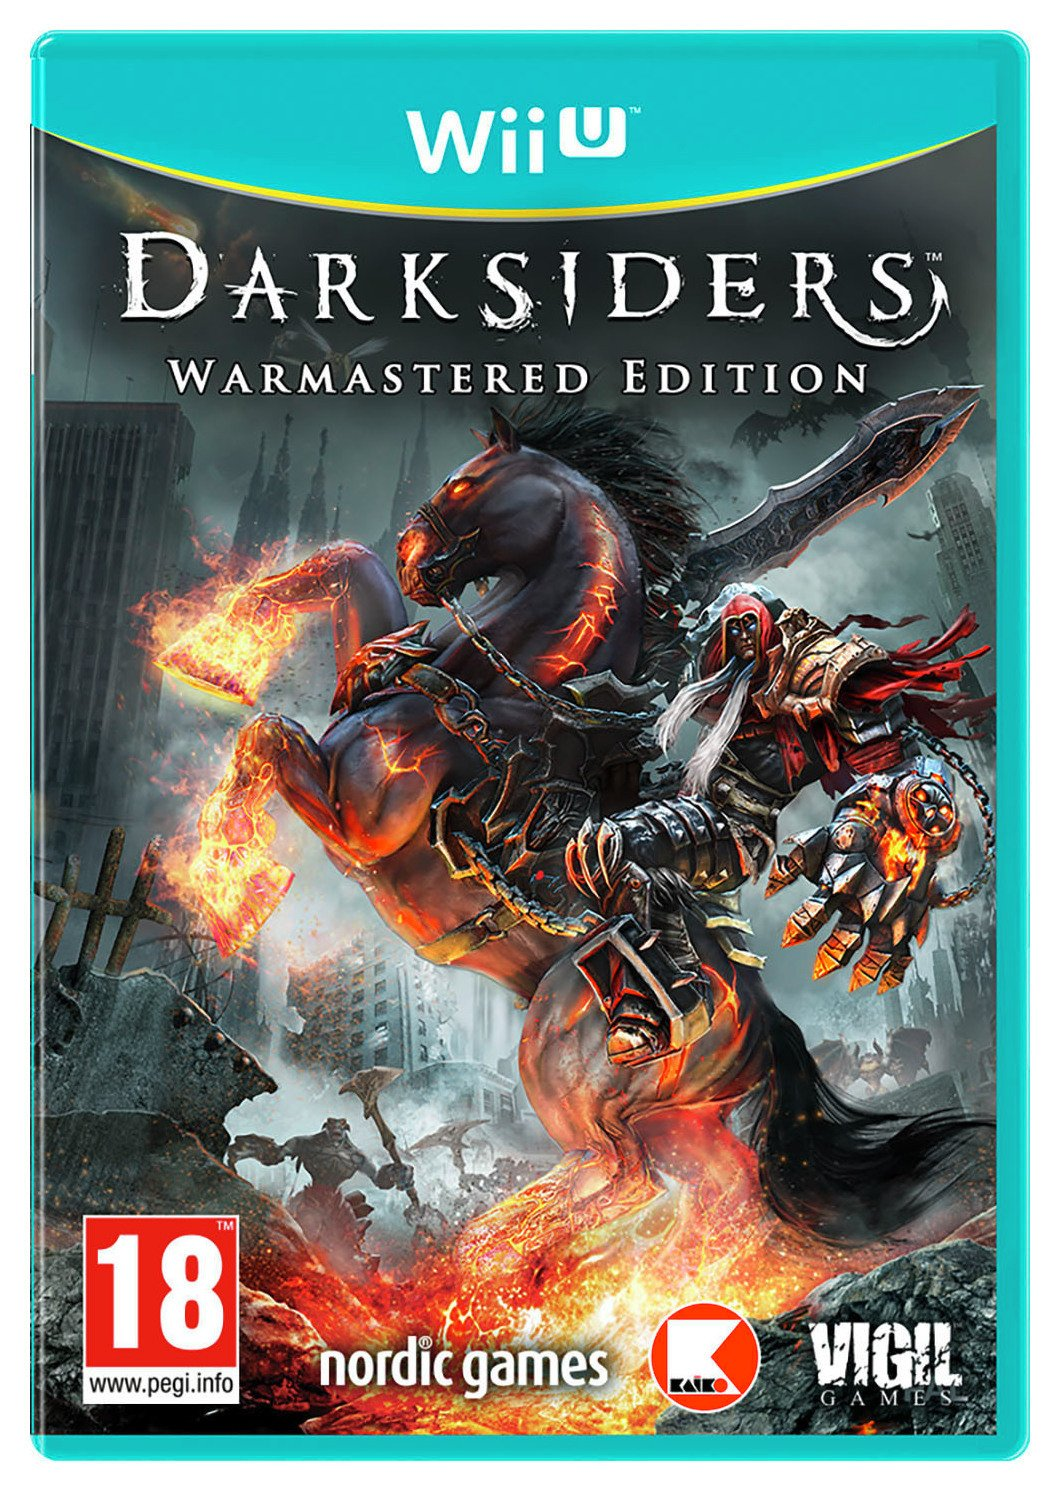 Image of Darksiders Warmastered Edition WiI U Game